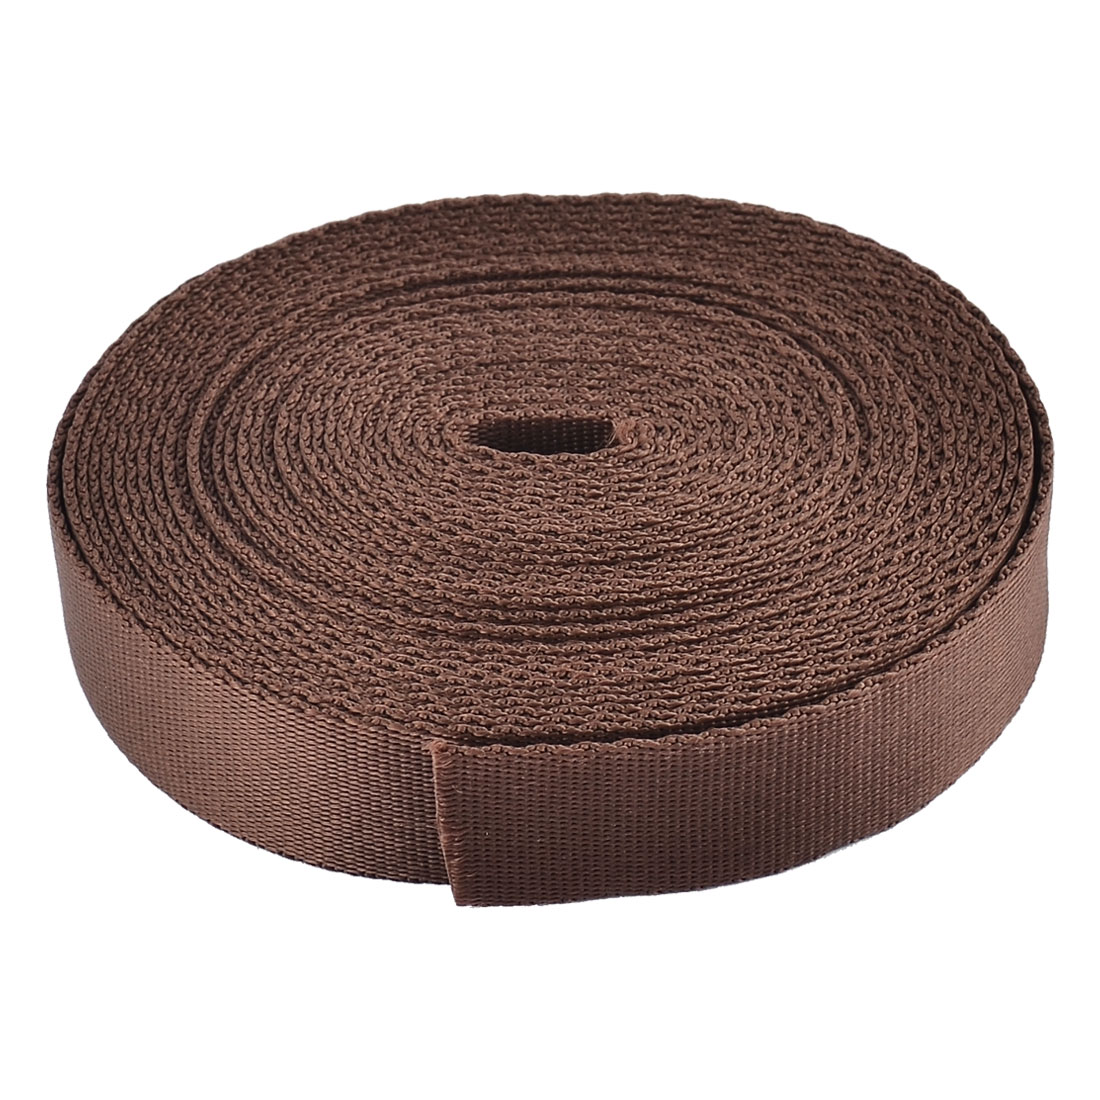 Household Nylon Suitcase Luggage Fastening Strap Belt Webbing Brown 2 x 500cm